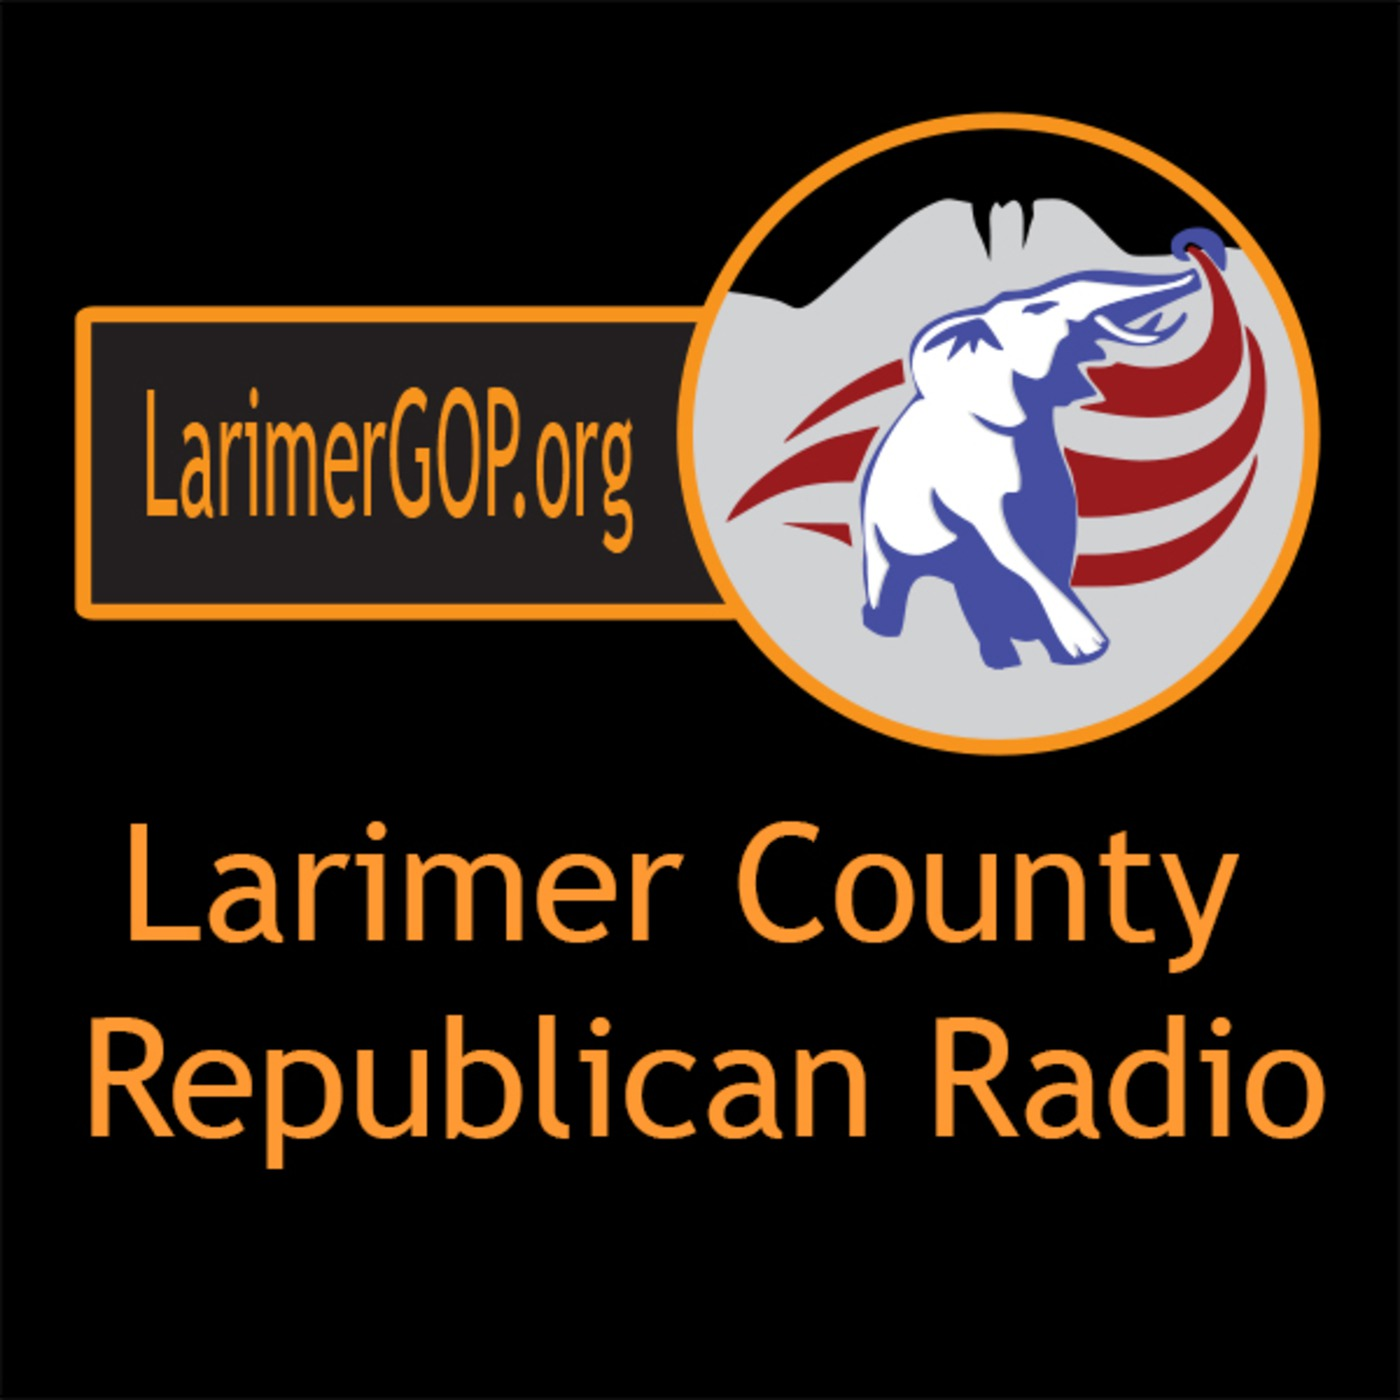 Larimer County Republican Radio